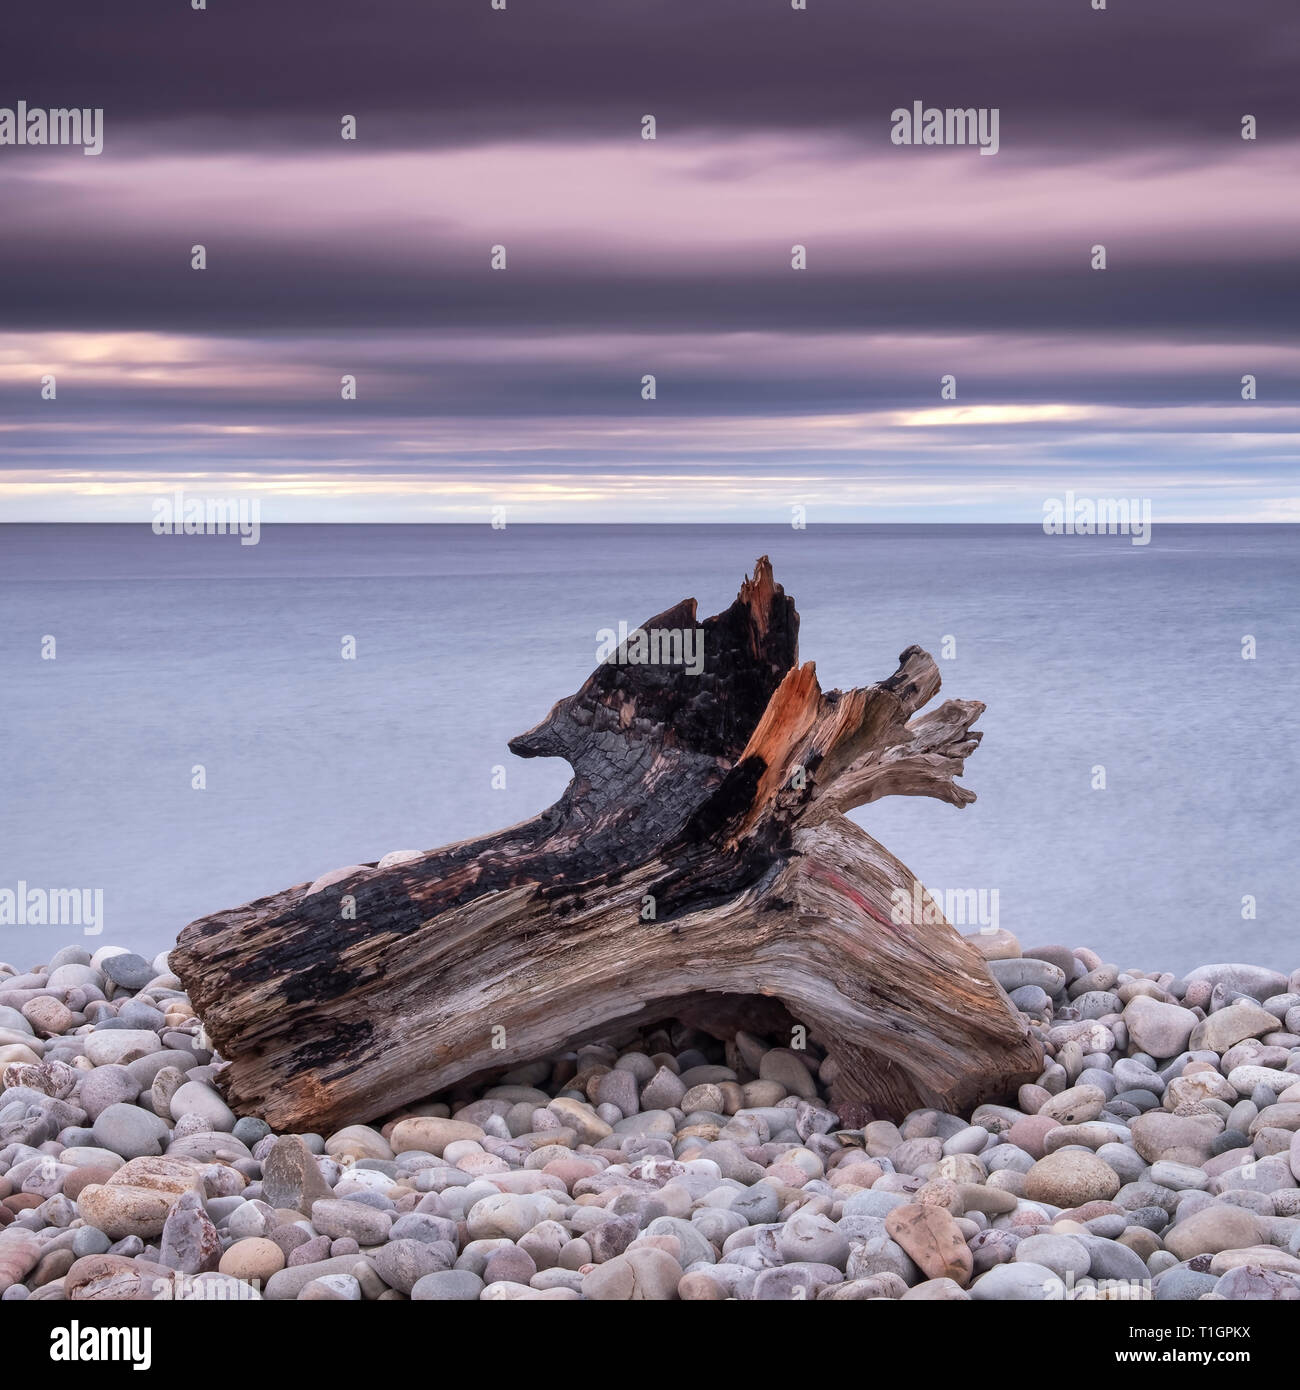 Driftwood on Spey Beach and the Moray Firth, Moray, Scotland, UK - Stock Image